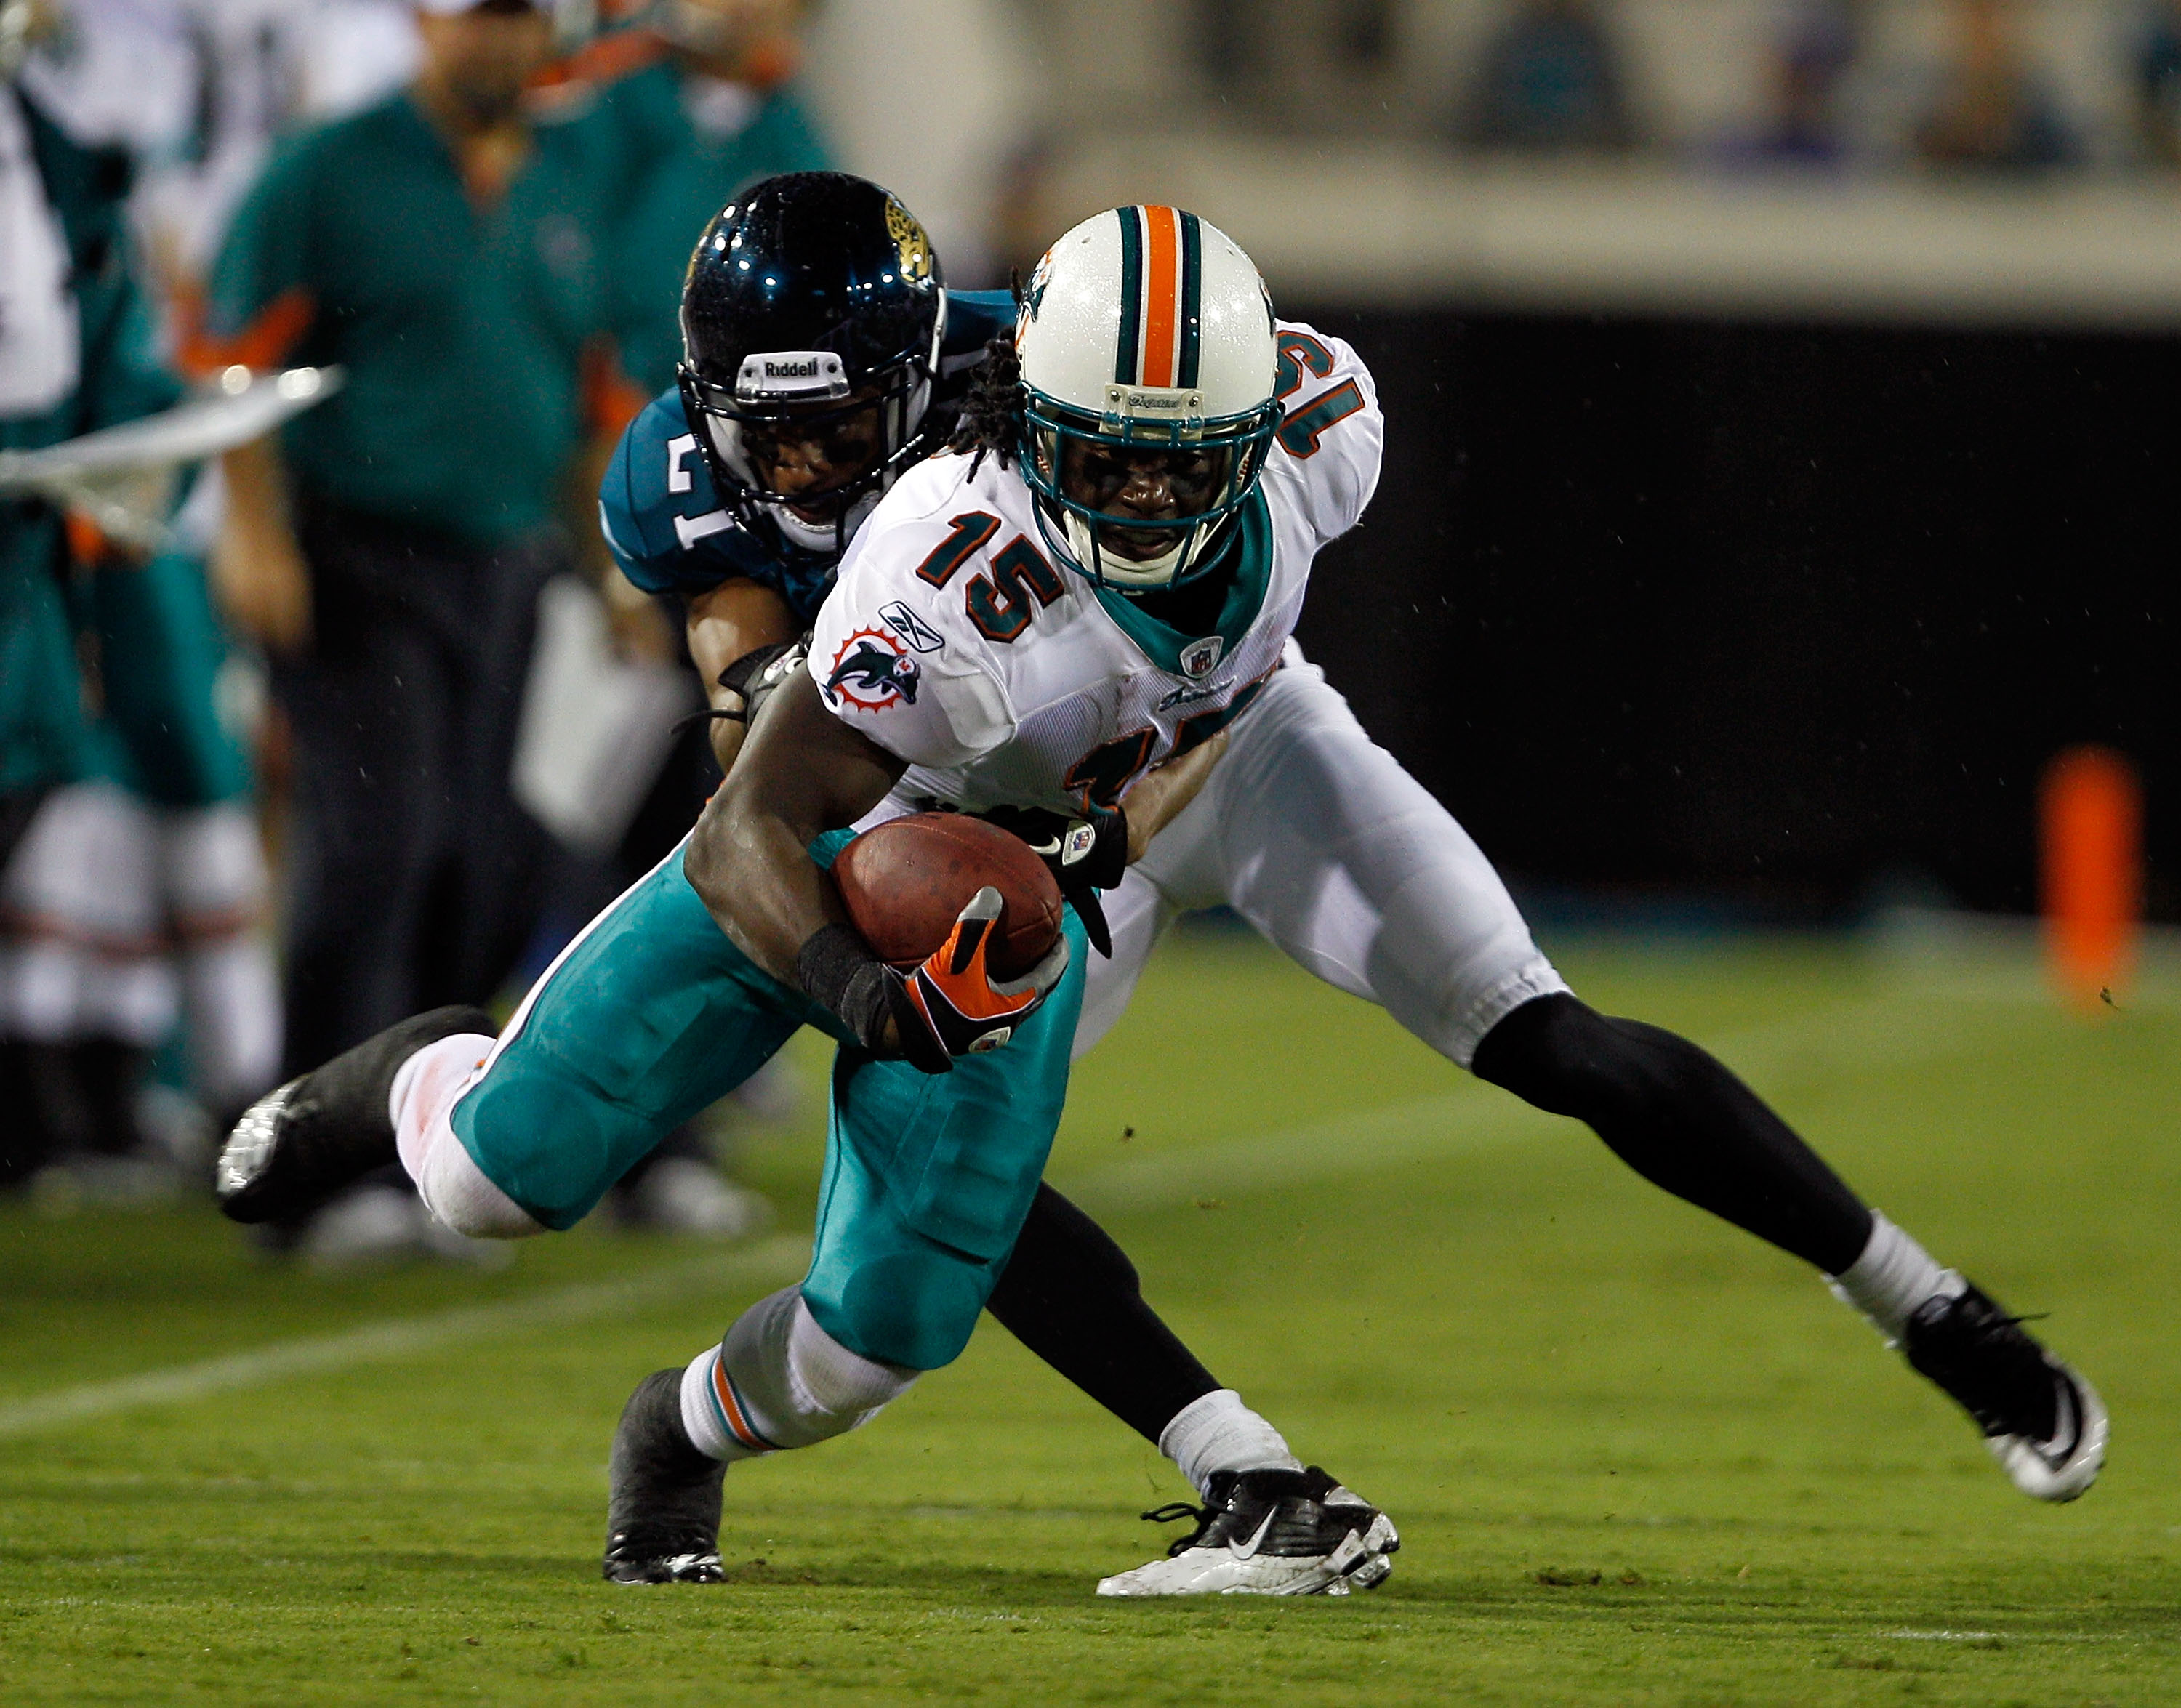 JACKSONVILLE, FL - AUGUST 21:  Derek Cox #21 of the Jacksonville Jaguars attempts to tackle Davone Bess #15 of the Miami Dolphins during the preseason game at EverBank Field on August 21, 2010 in Jacksonville, Florida.  (Photo by Sam Greenwood/Getty Image